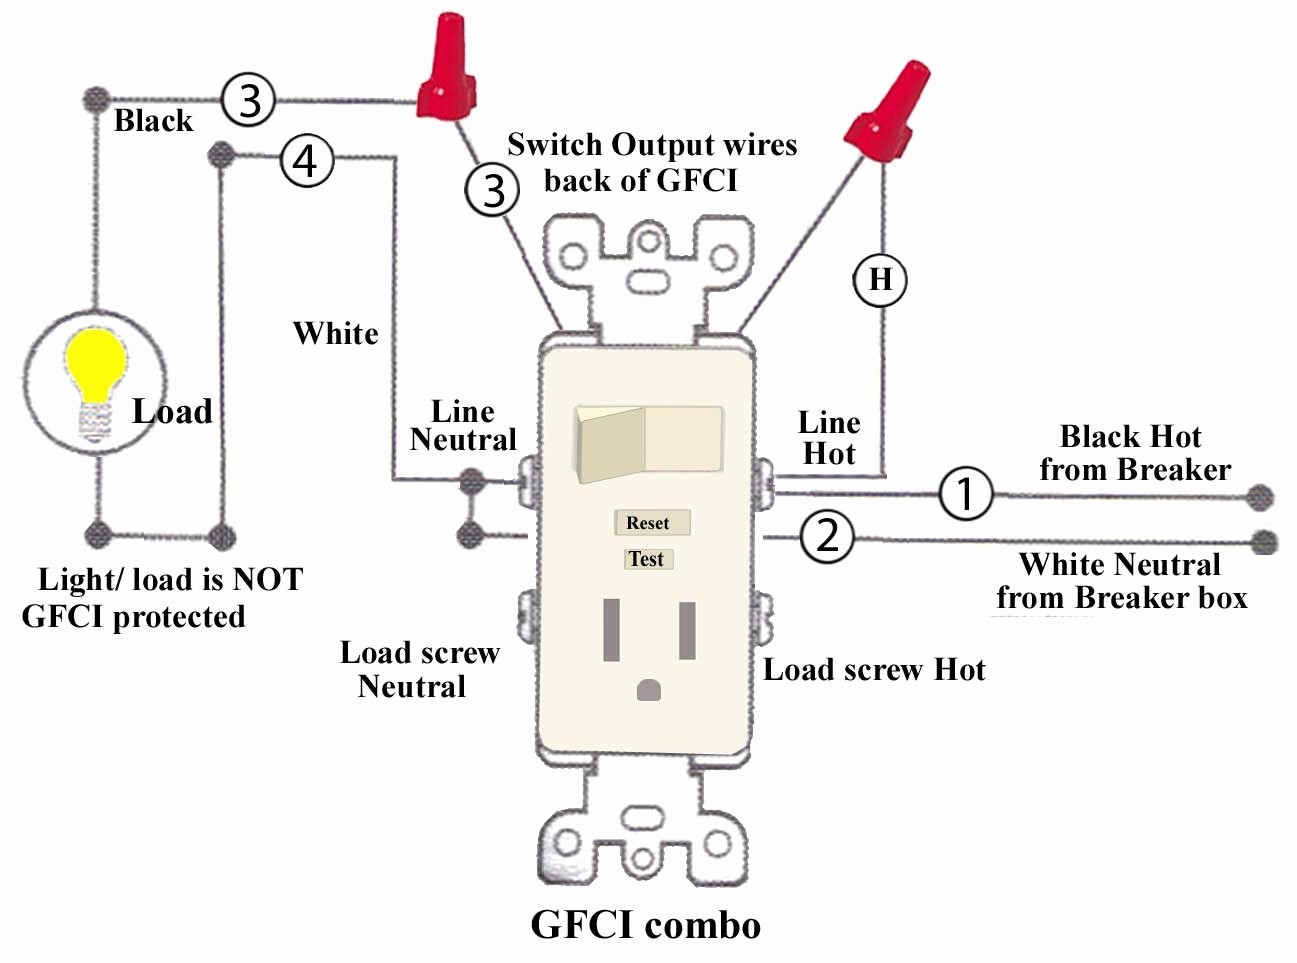 Swell Wire Diagram For Gfci Wiring Library Wiring Cloud Loplapiotaidewilluminateatxorg